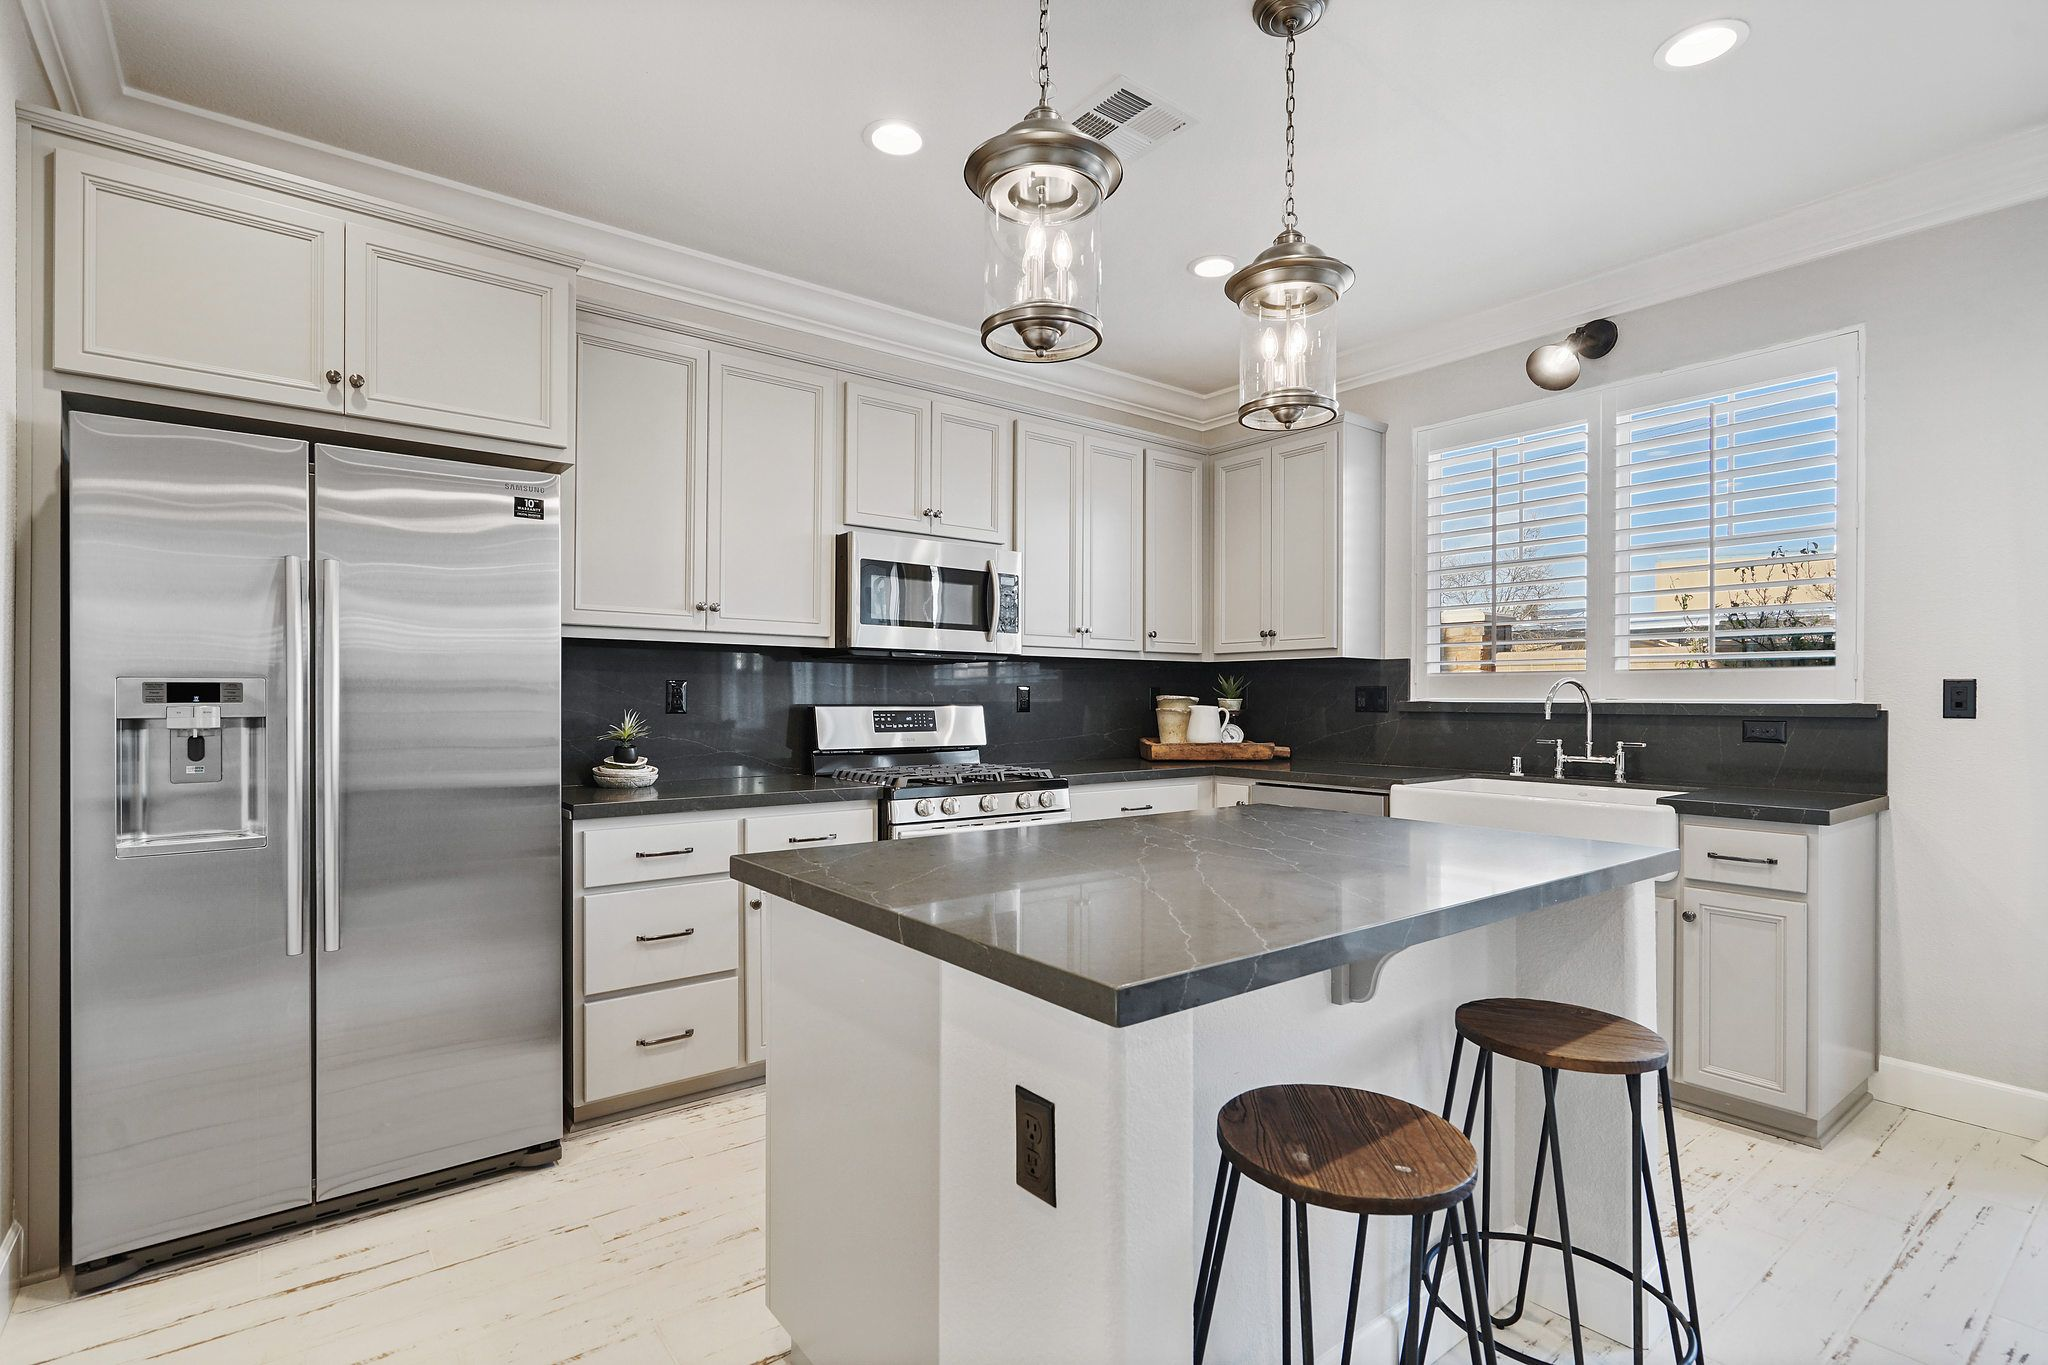 Kitchen featured in the Avalon By Discovery Homes in Oakland-Alameda, CA